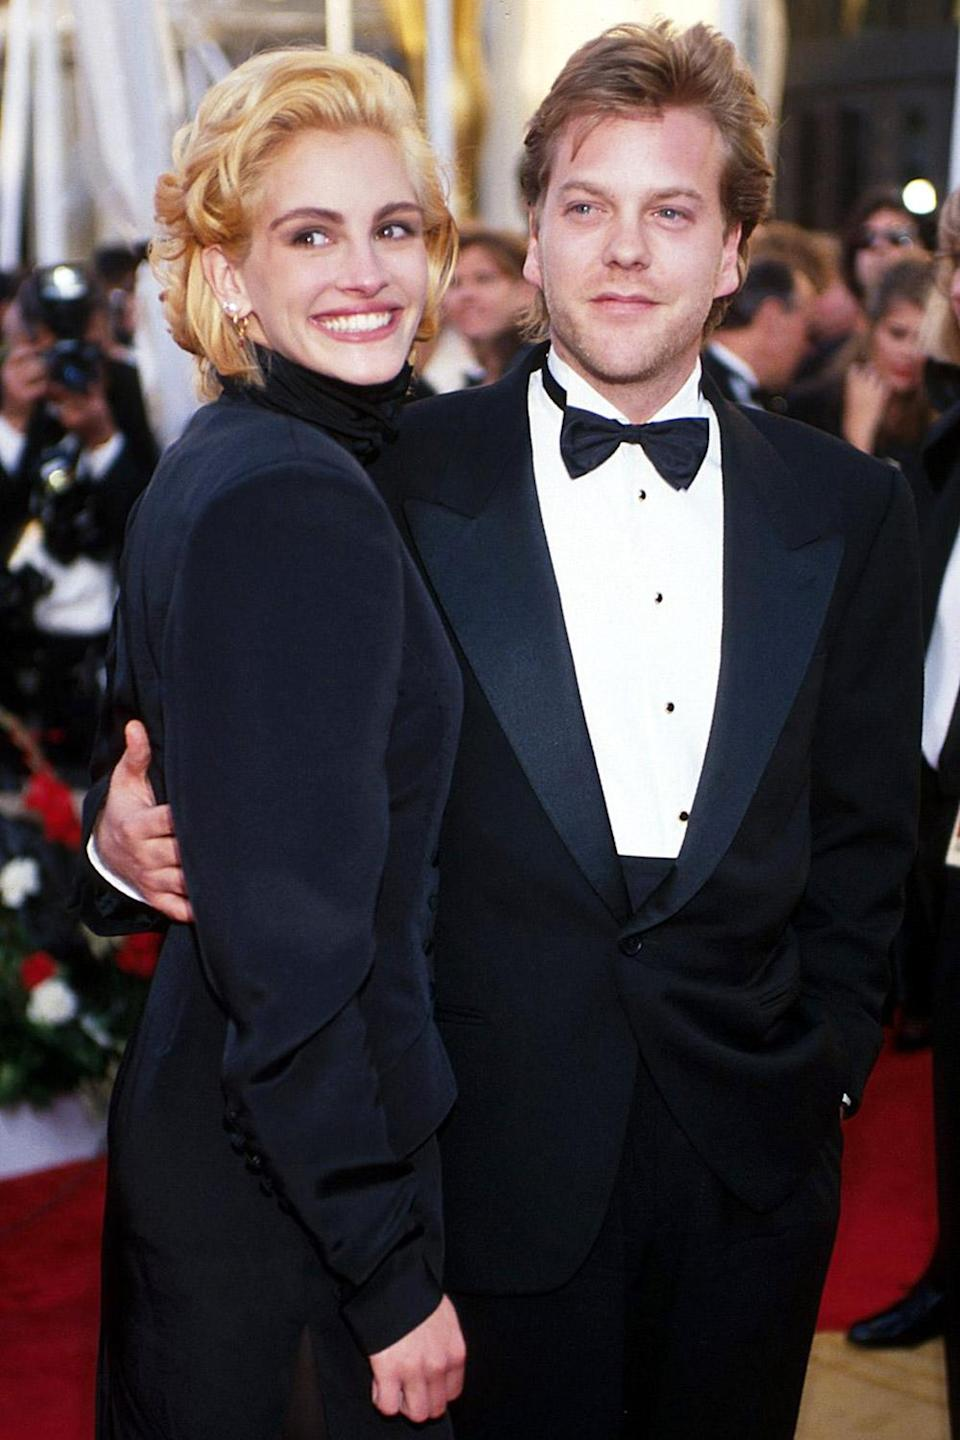 <p>Julia Roberts ditched her long, auburn locks for a short blonde look and arrived with her date, Kiefer Sutherland. She was nominated for <em>Pretty Woman </em>that year. </p>